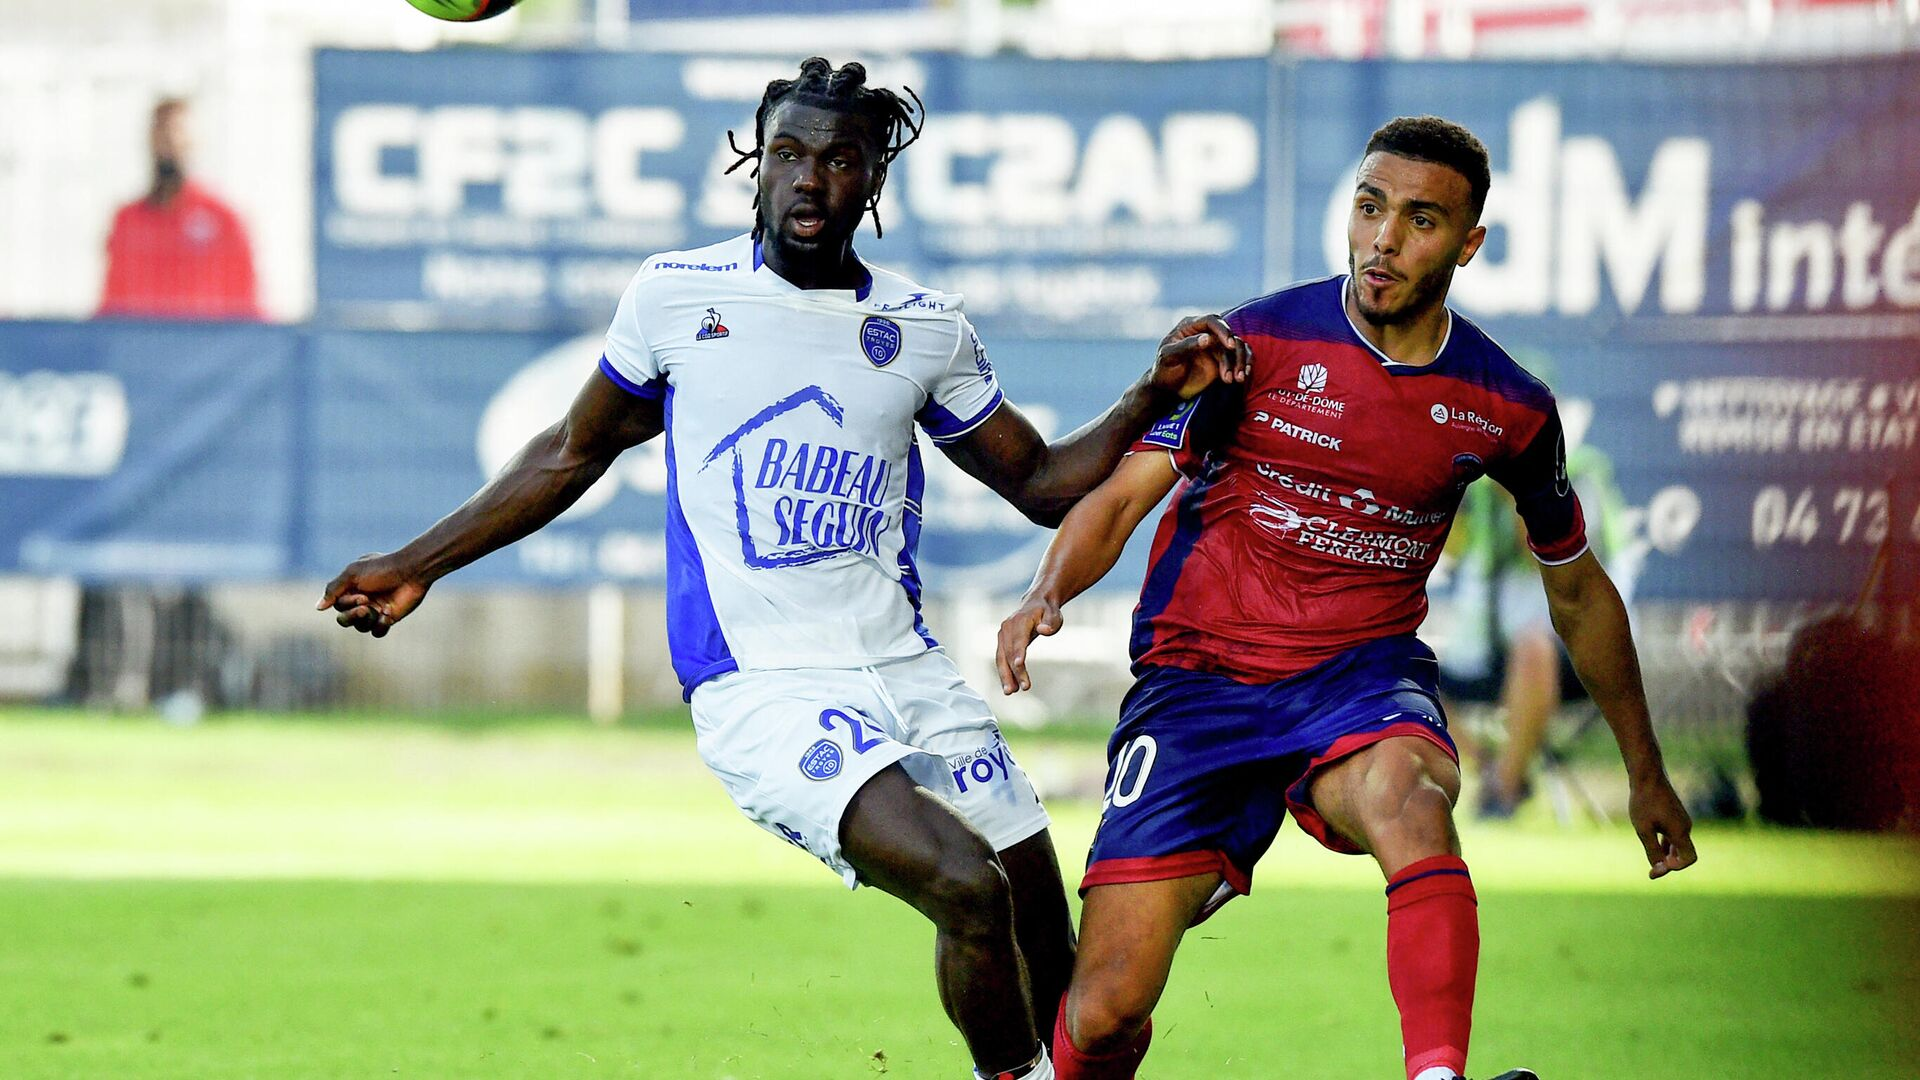 Troyes' Guinean forward Mama Balde (L) fights for the ball with Clermont's French defender Akim Zedadka (R) during  the French L1 football match between Clermont (CF63) and Troyes (ESTAC) , at the Gabriel-Montpied stadium in Clermont-Ferrand on August 15, 2021. (Photo by JEAN-PHILIPPE KSIAZEK / AFP) - РИА Новости, 1920, 15.08.2021